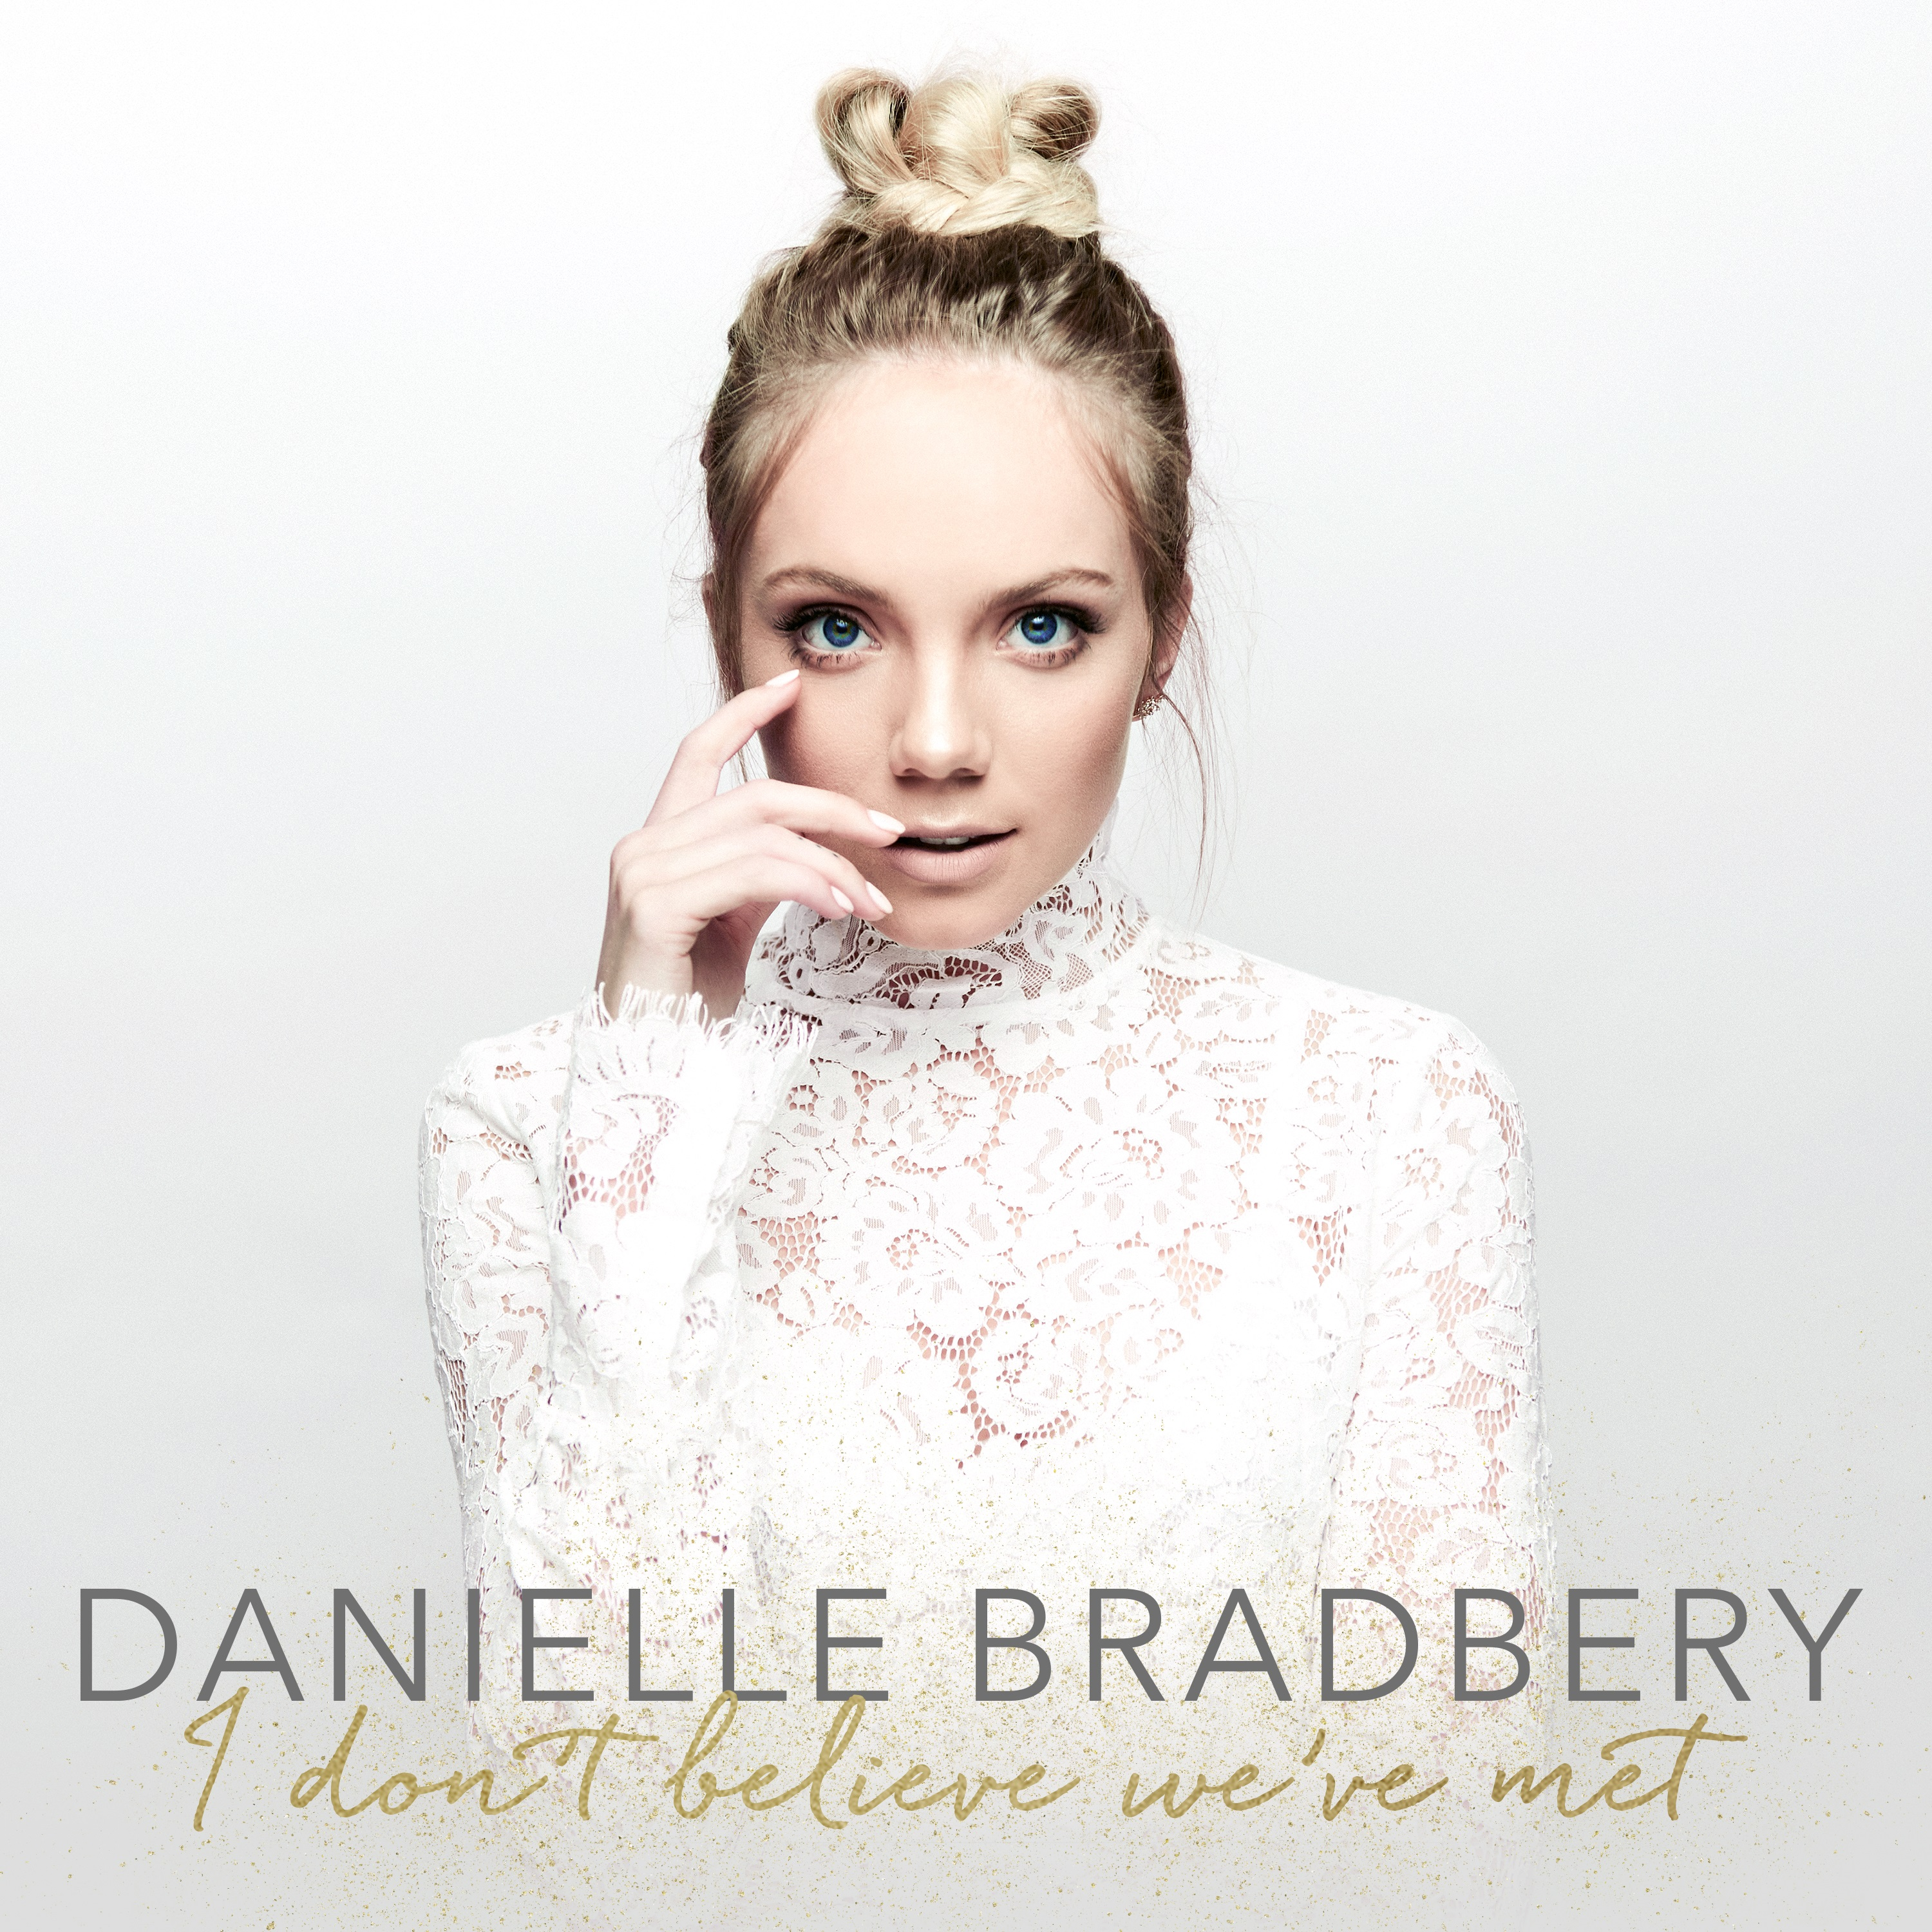 Image result for danielle bradbery i don't believe we've met